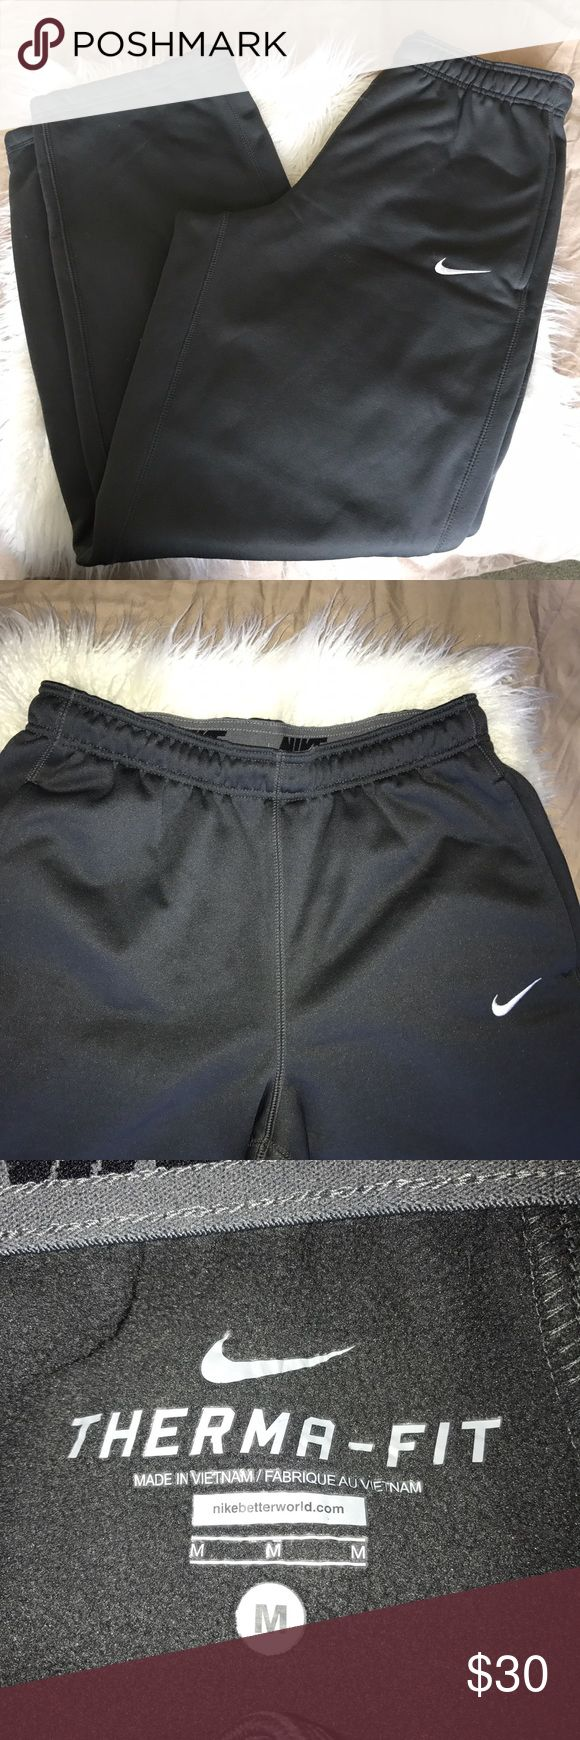 Men's Nike Therma-fit Sweatpants These are in brand new without tags condition. Dark grey with warm inside and sleeve outer. I Purchased these and the medium Nike shirt as a gift for my boyfriend but he wears a large in these so up for grabs! Offer! Bundle! Save! Nike Pants Sweatpants & Joggers